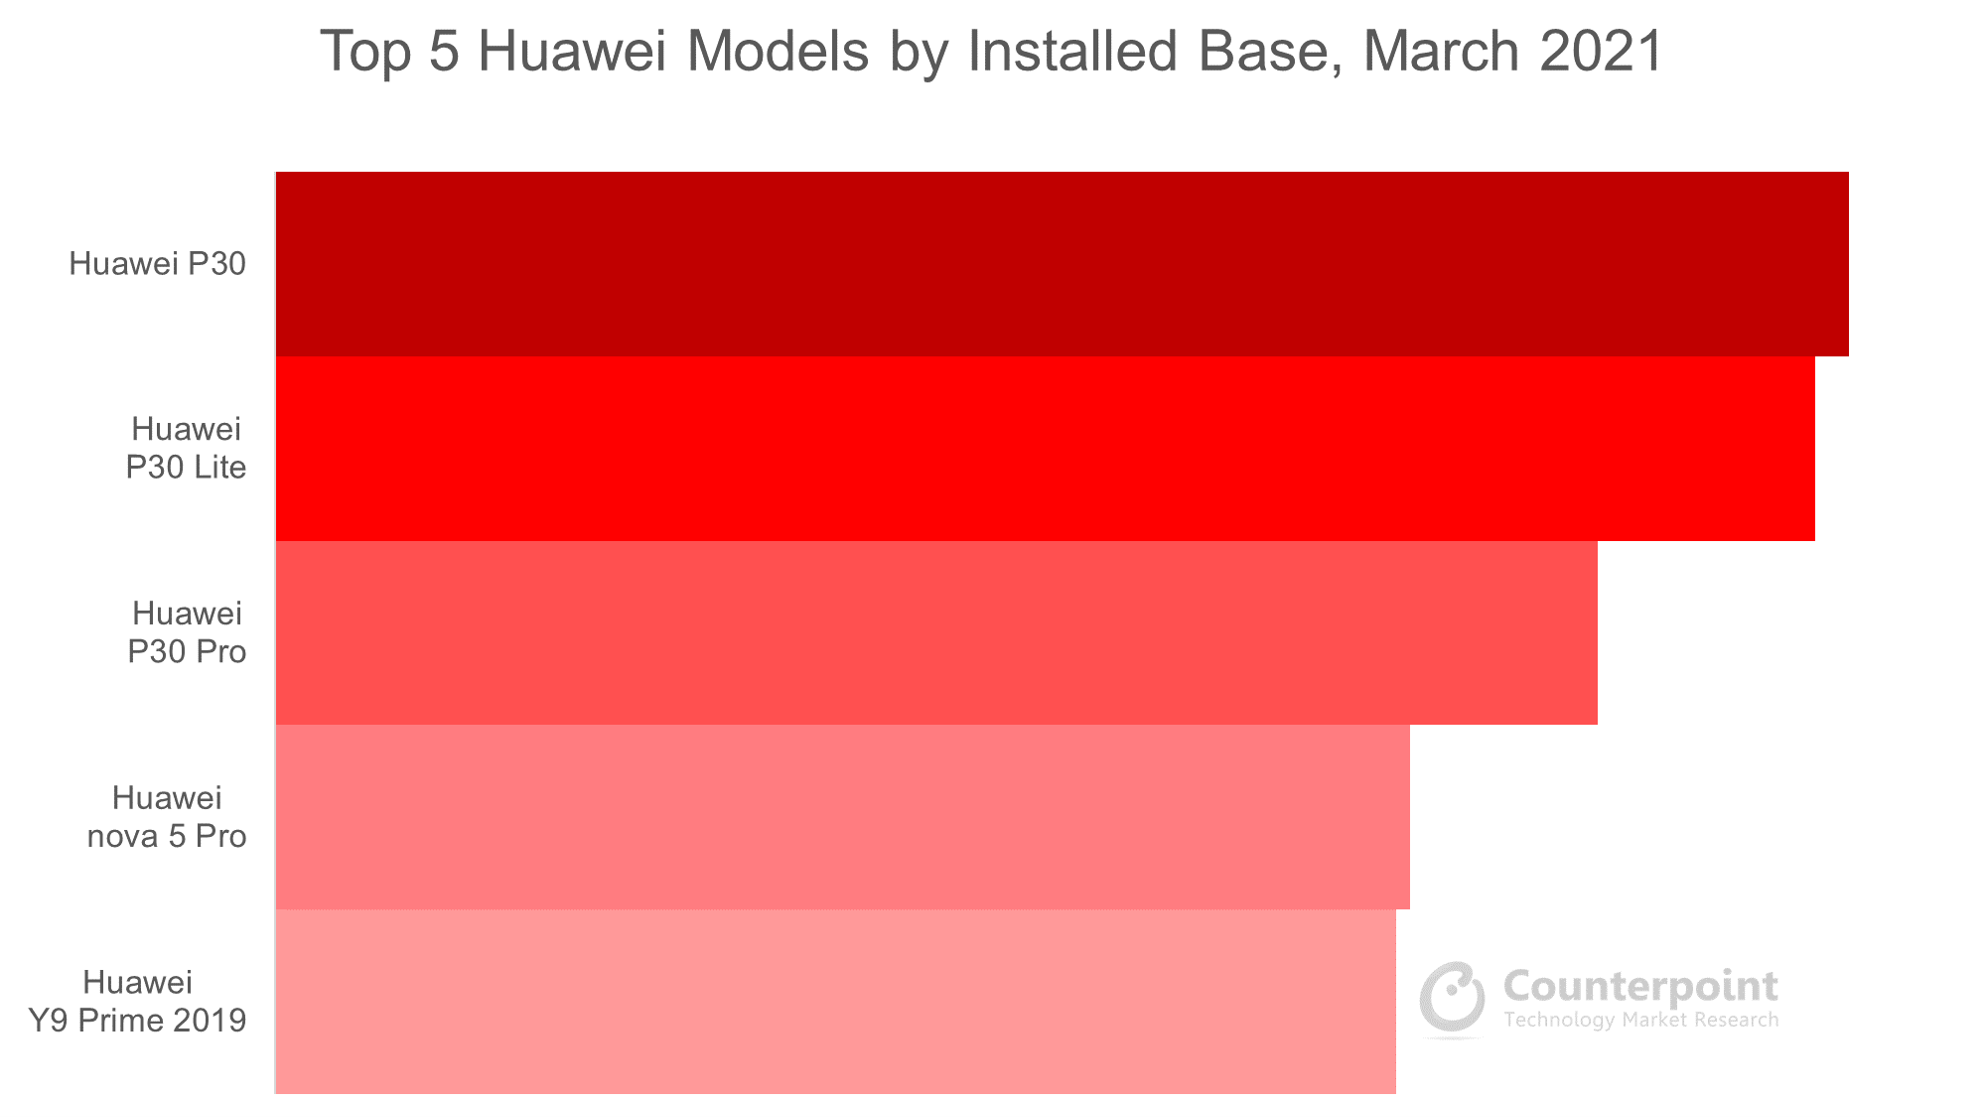 Counterpoint Research Top 5 Huawei Models by Installed Base, March 2021